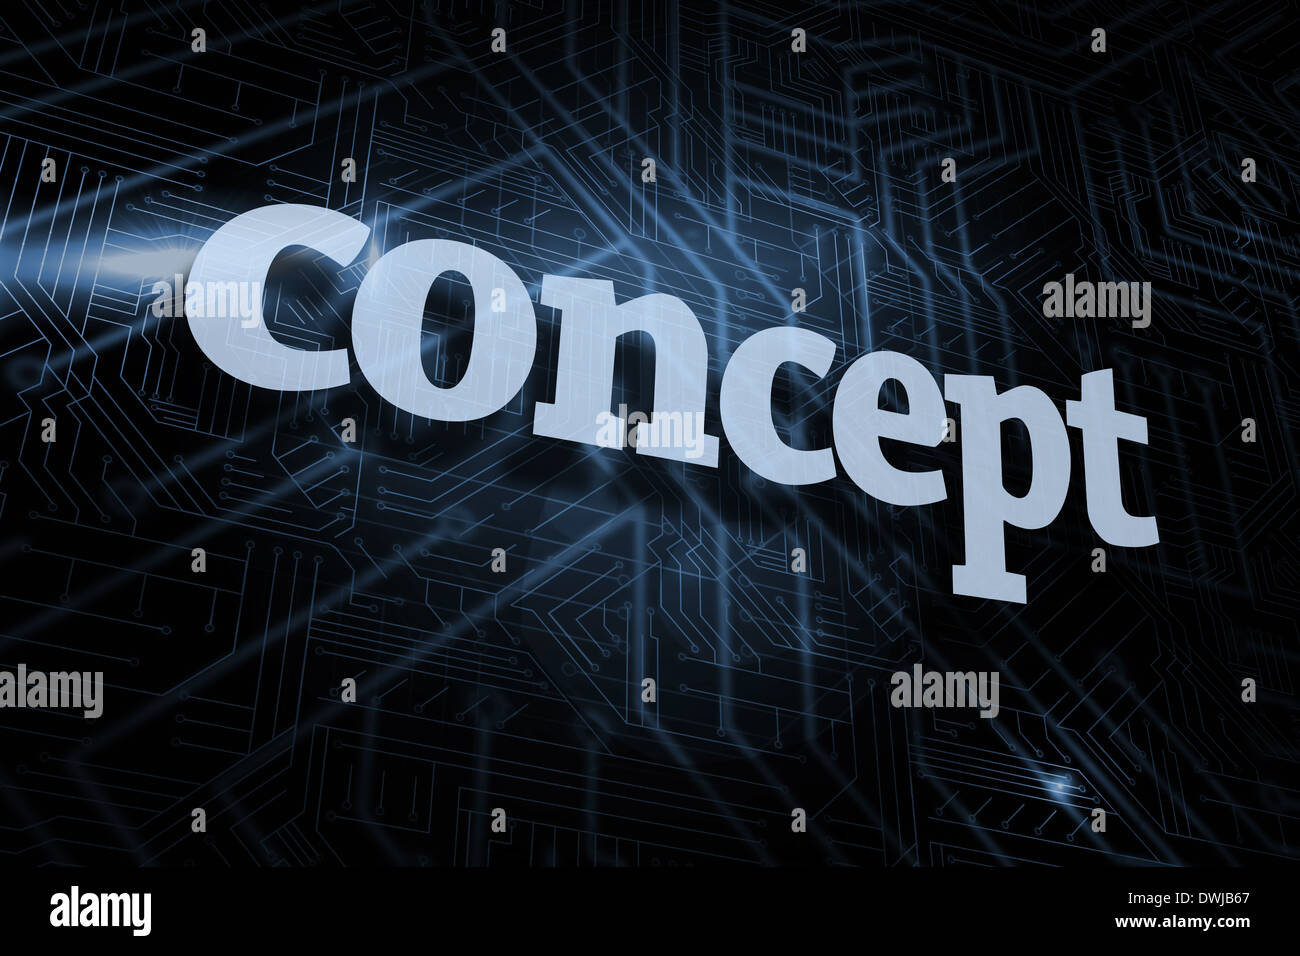 Concept against futuristic black and blue background - Stock Image